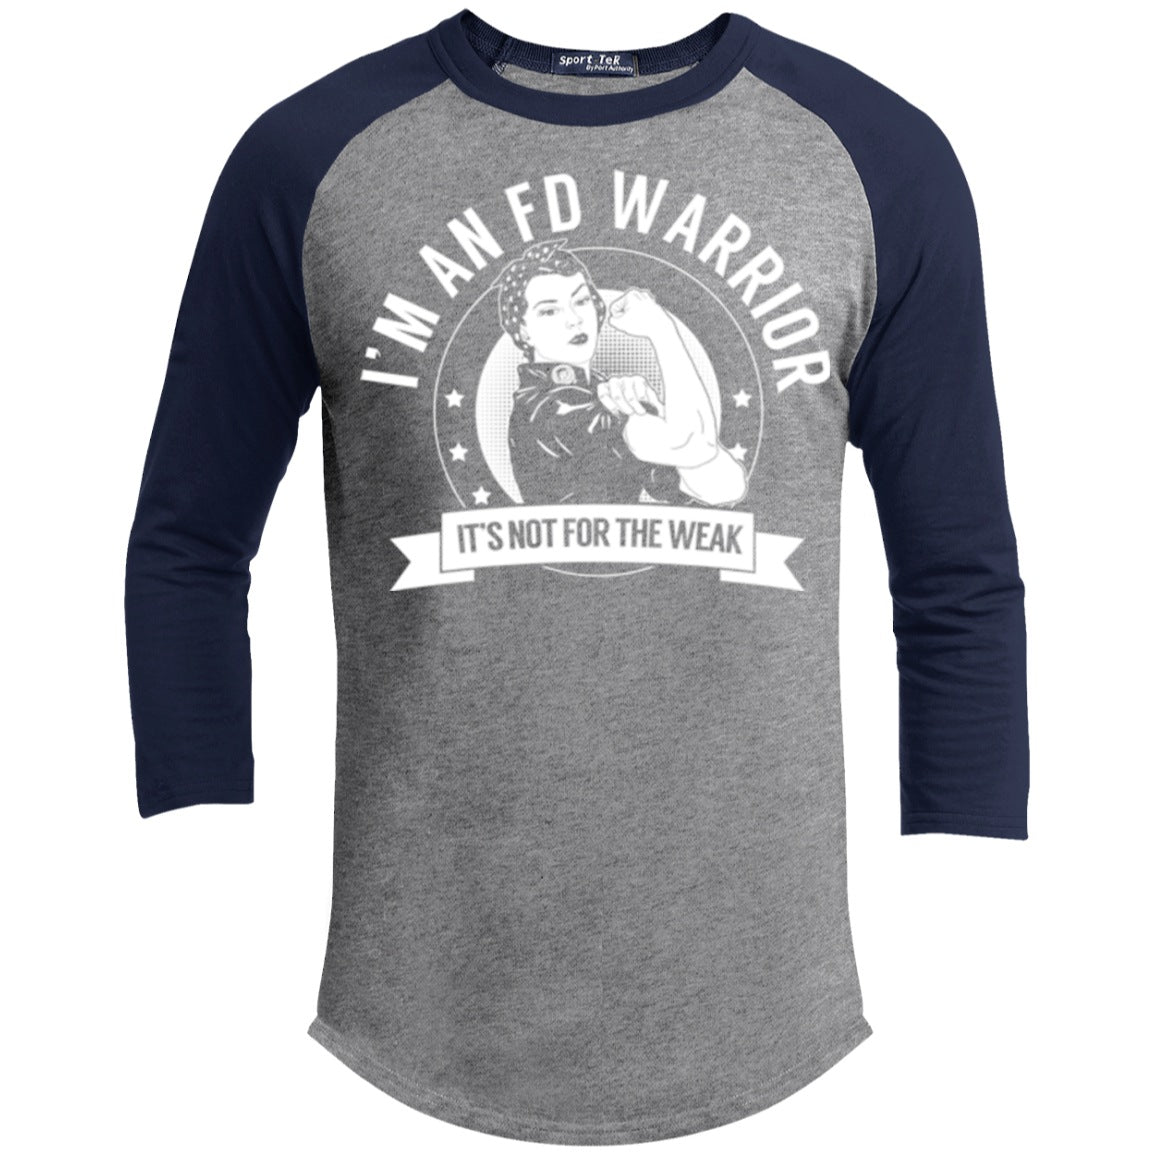 Fibrous Dysplasia - FD Warrior Not For The Weak Baseball Shirt - The Unchargeables